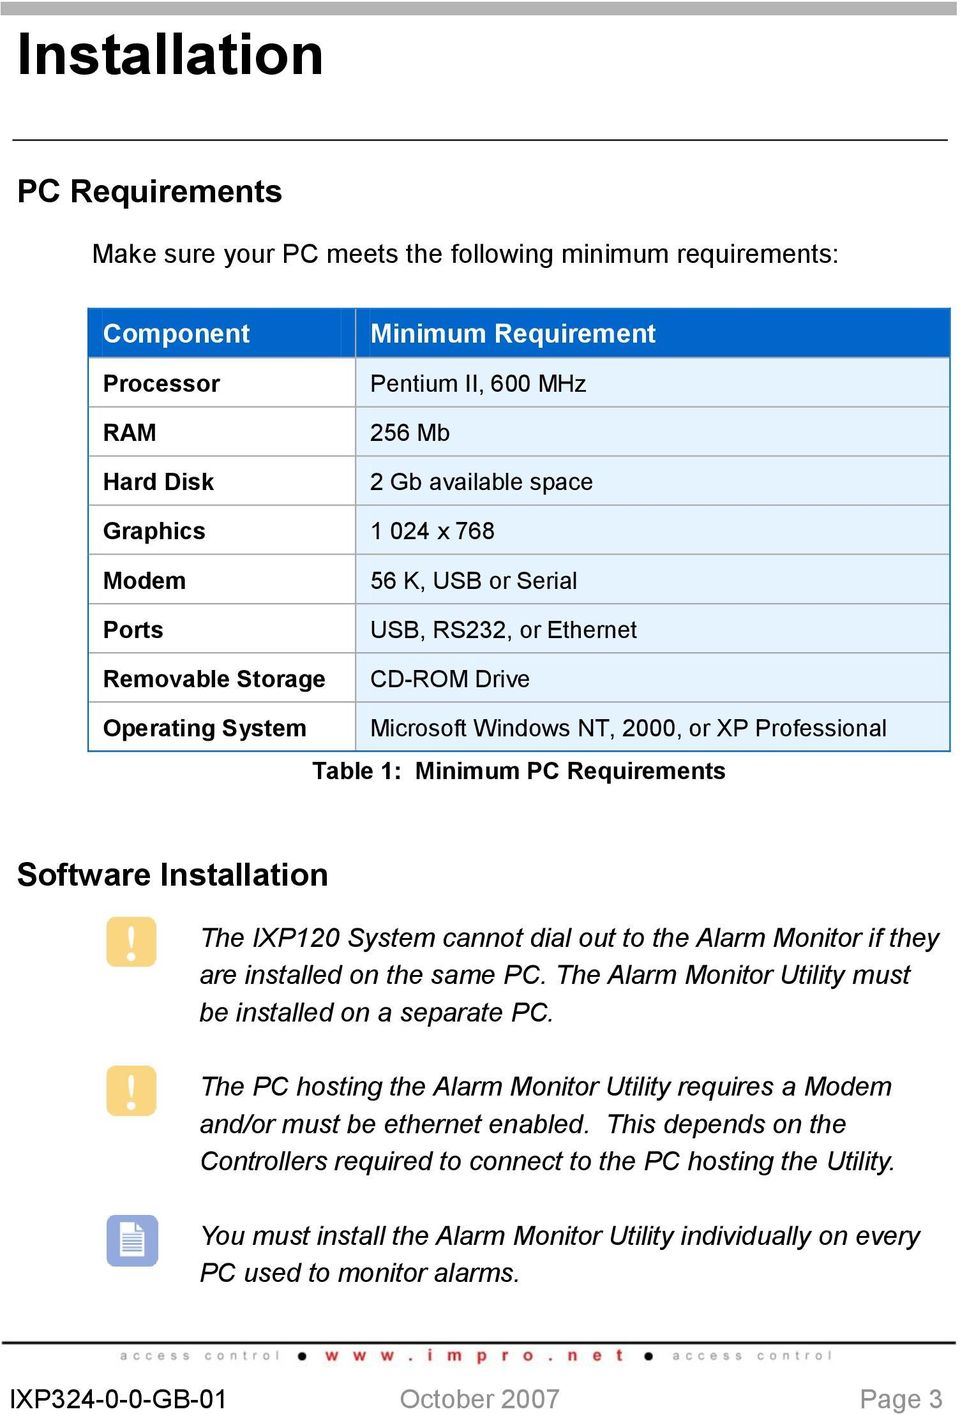 Software Installation The IXP120 System cannot dial out to the Alarm Monitor if they are installed on the same PC. The Alarm Monitor Utility must be installed on a separate PC.